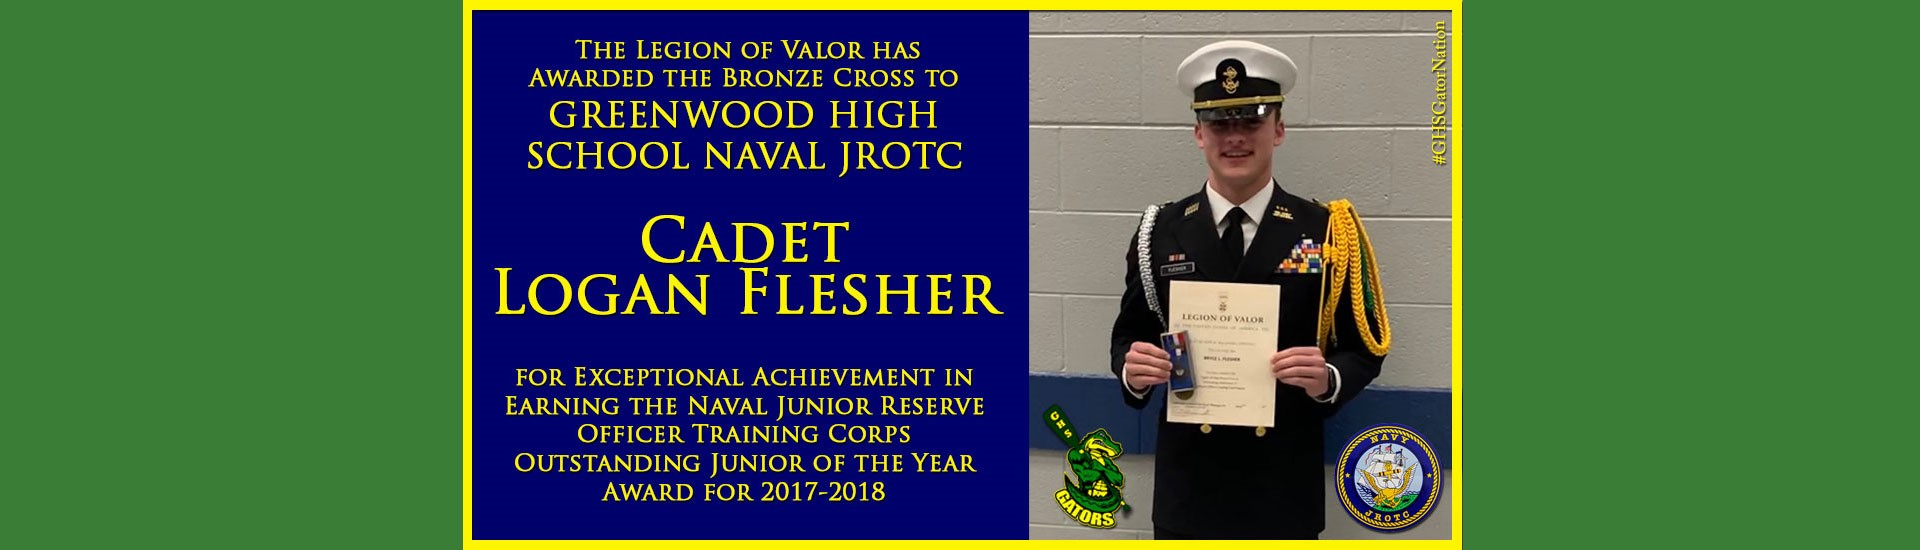 Cadet Logan Flesher